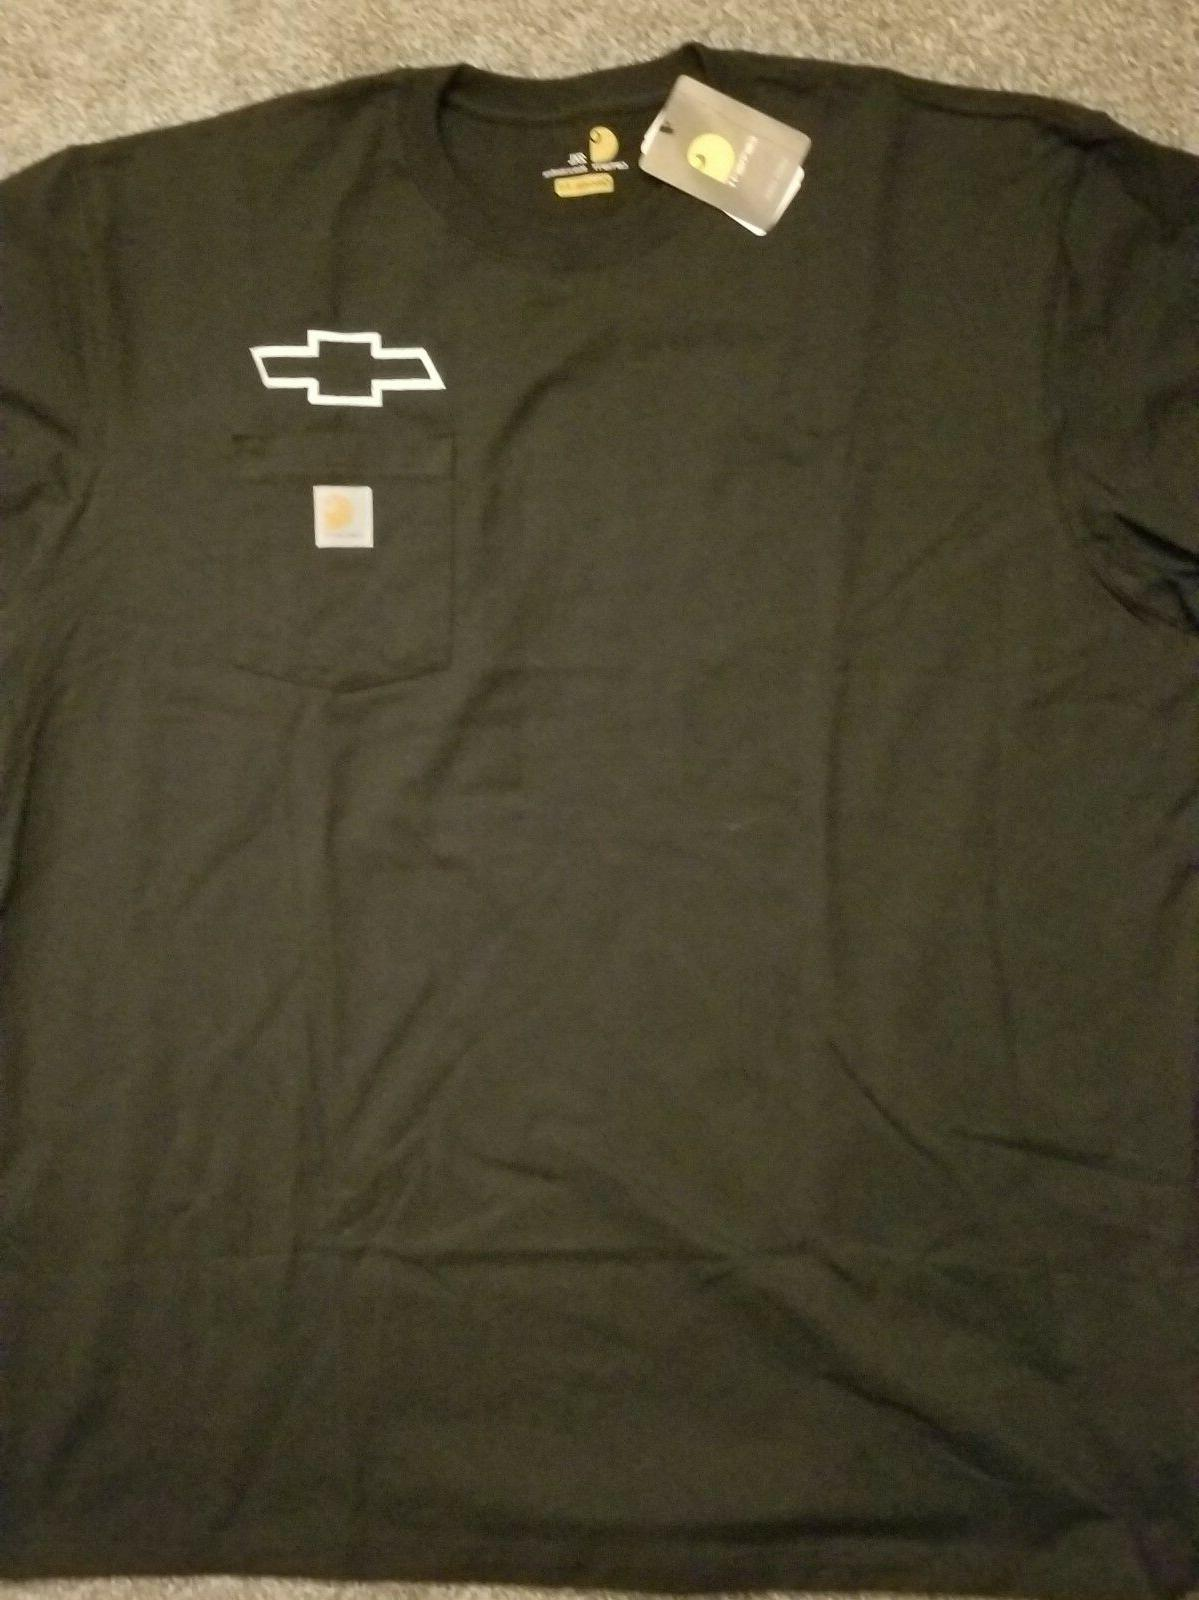 chevy bow tie tee shirt with pocket